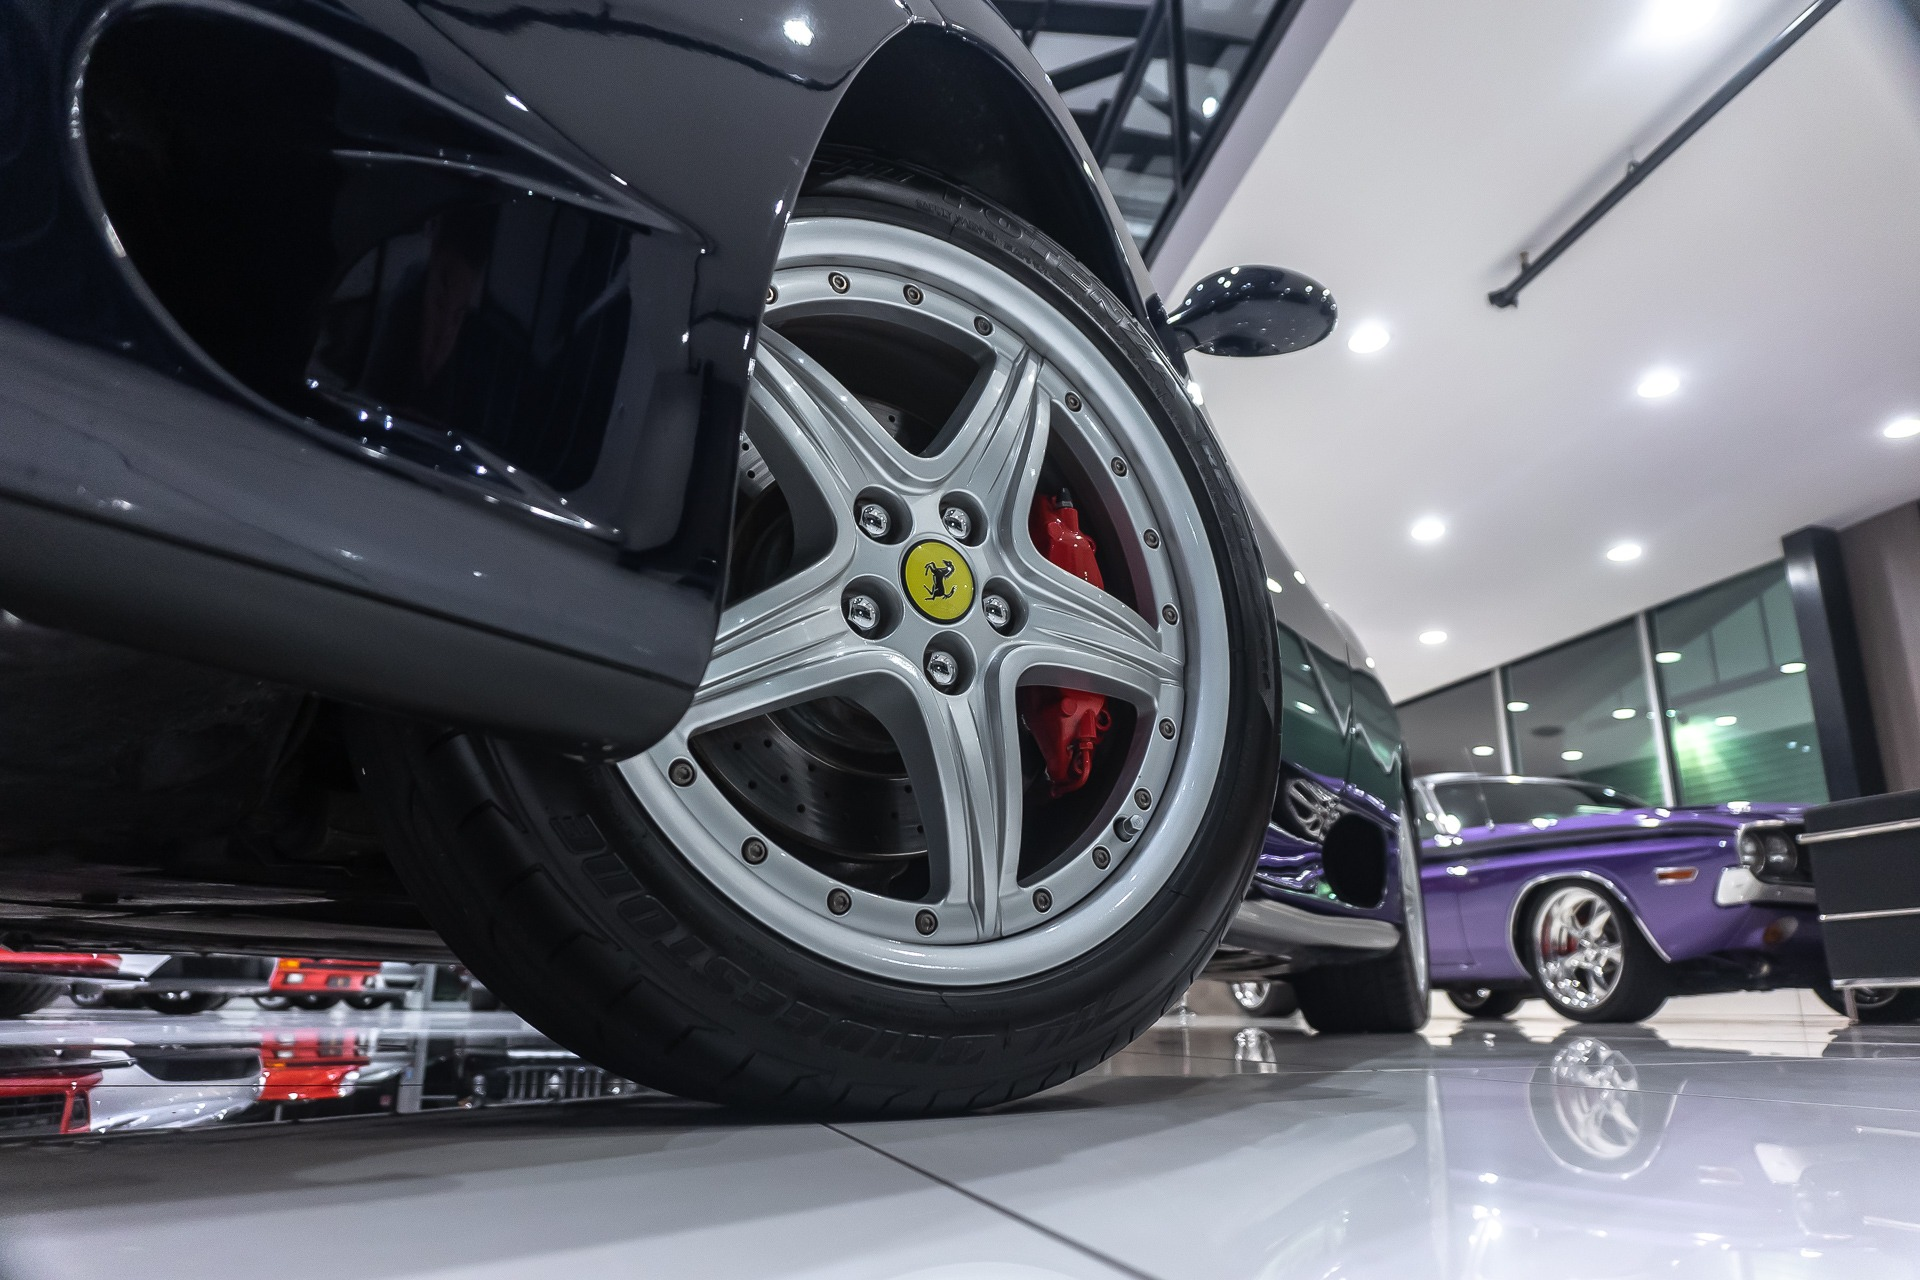 Used-2004-Ferrari-360-Spider-GATED-6-SPEED-MANUAL-ONLY-20K-MILES